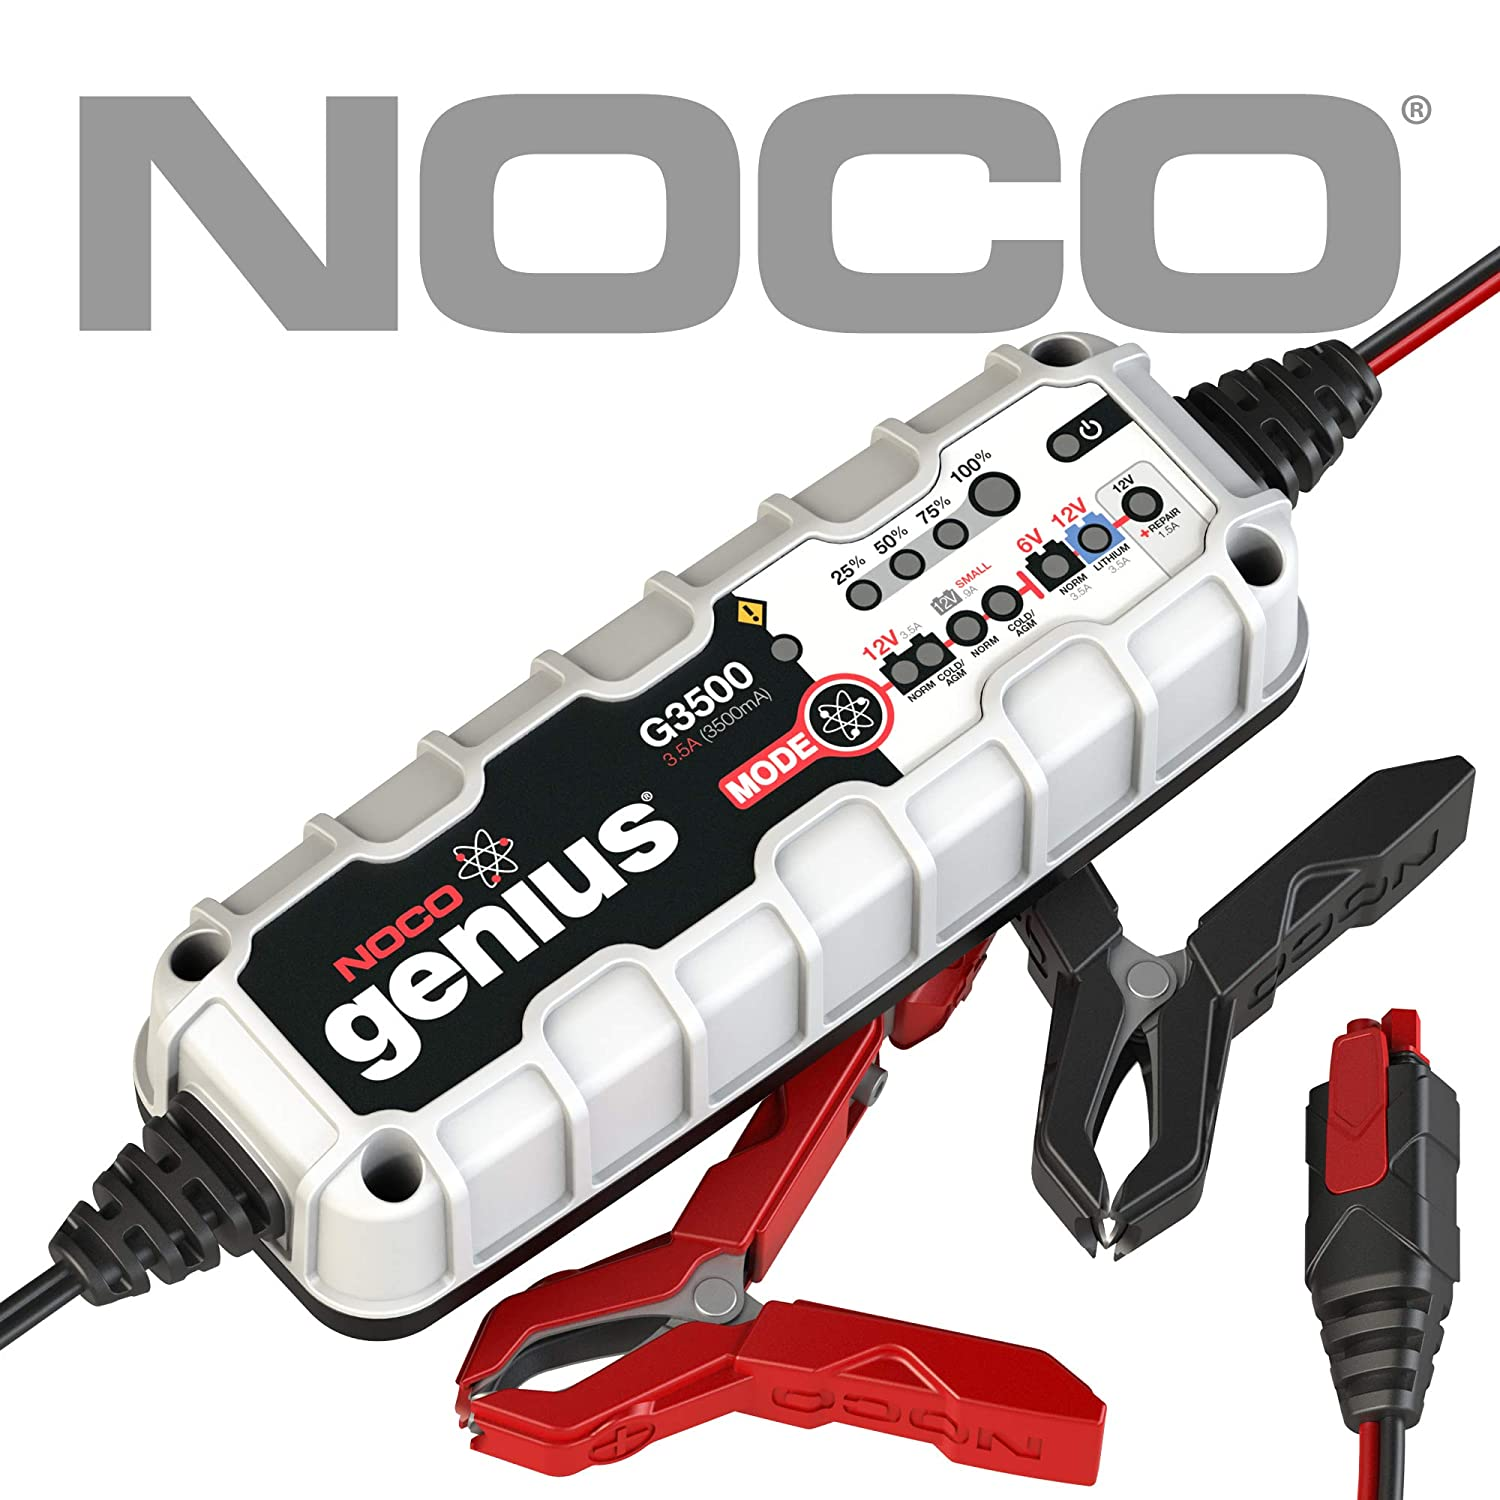 NOCO Genius Boost G3500EU NOCO Genius G3500 Ladegerä t, 6V/12V 3.5A, Version 2